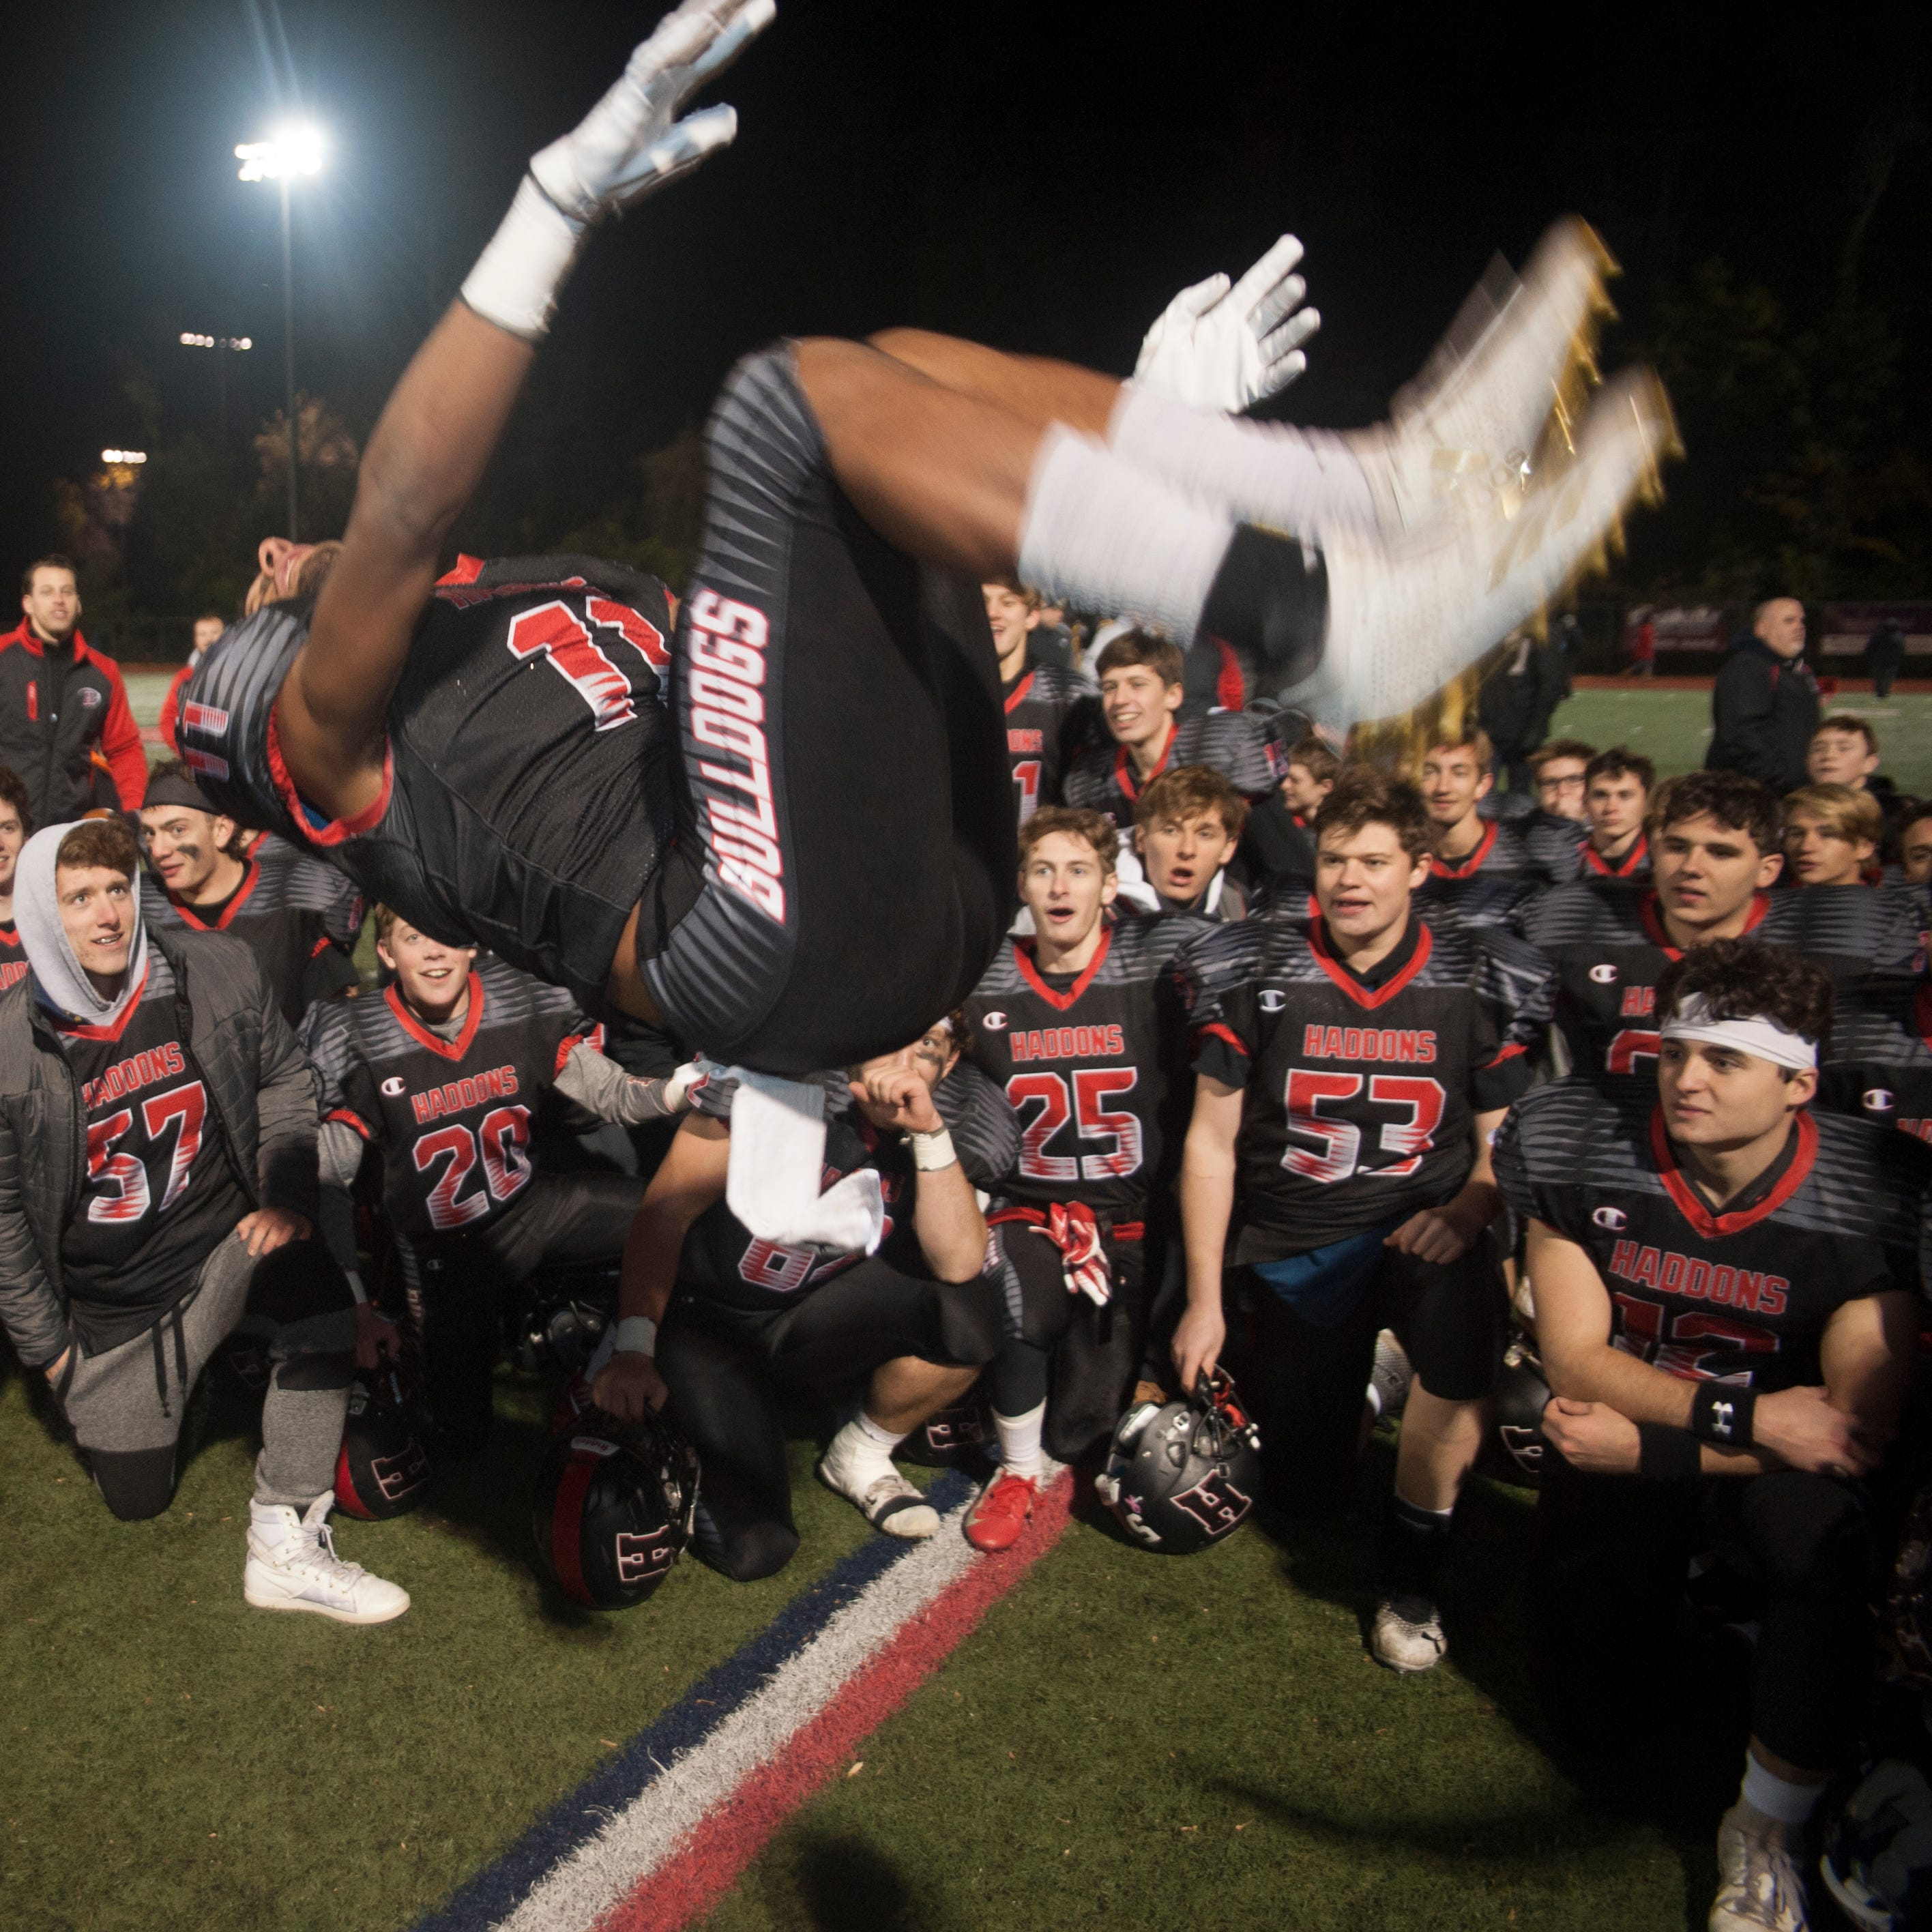 South Jersey Football: A final 'Hat's Off' to a wild and fun 2018 season